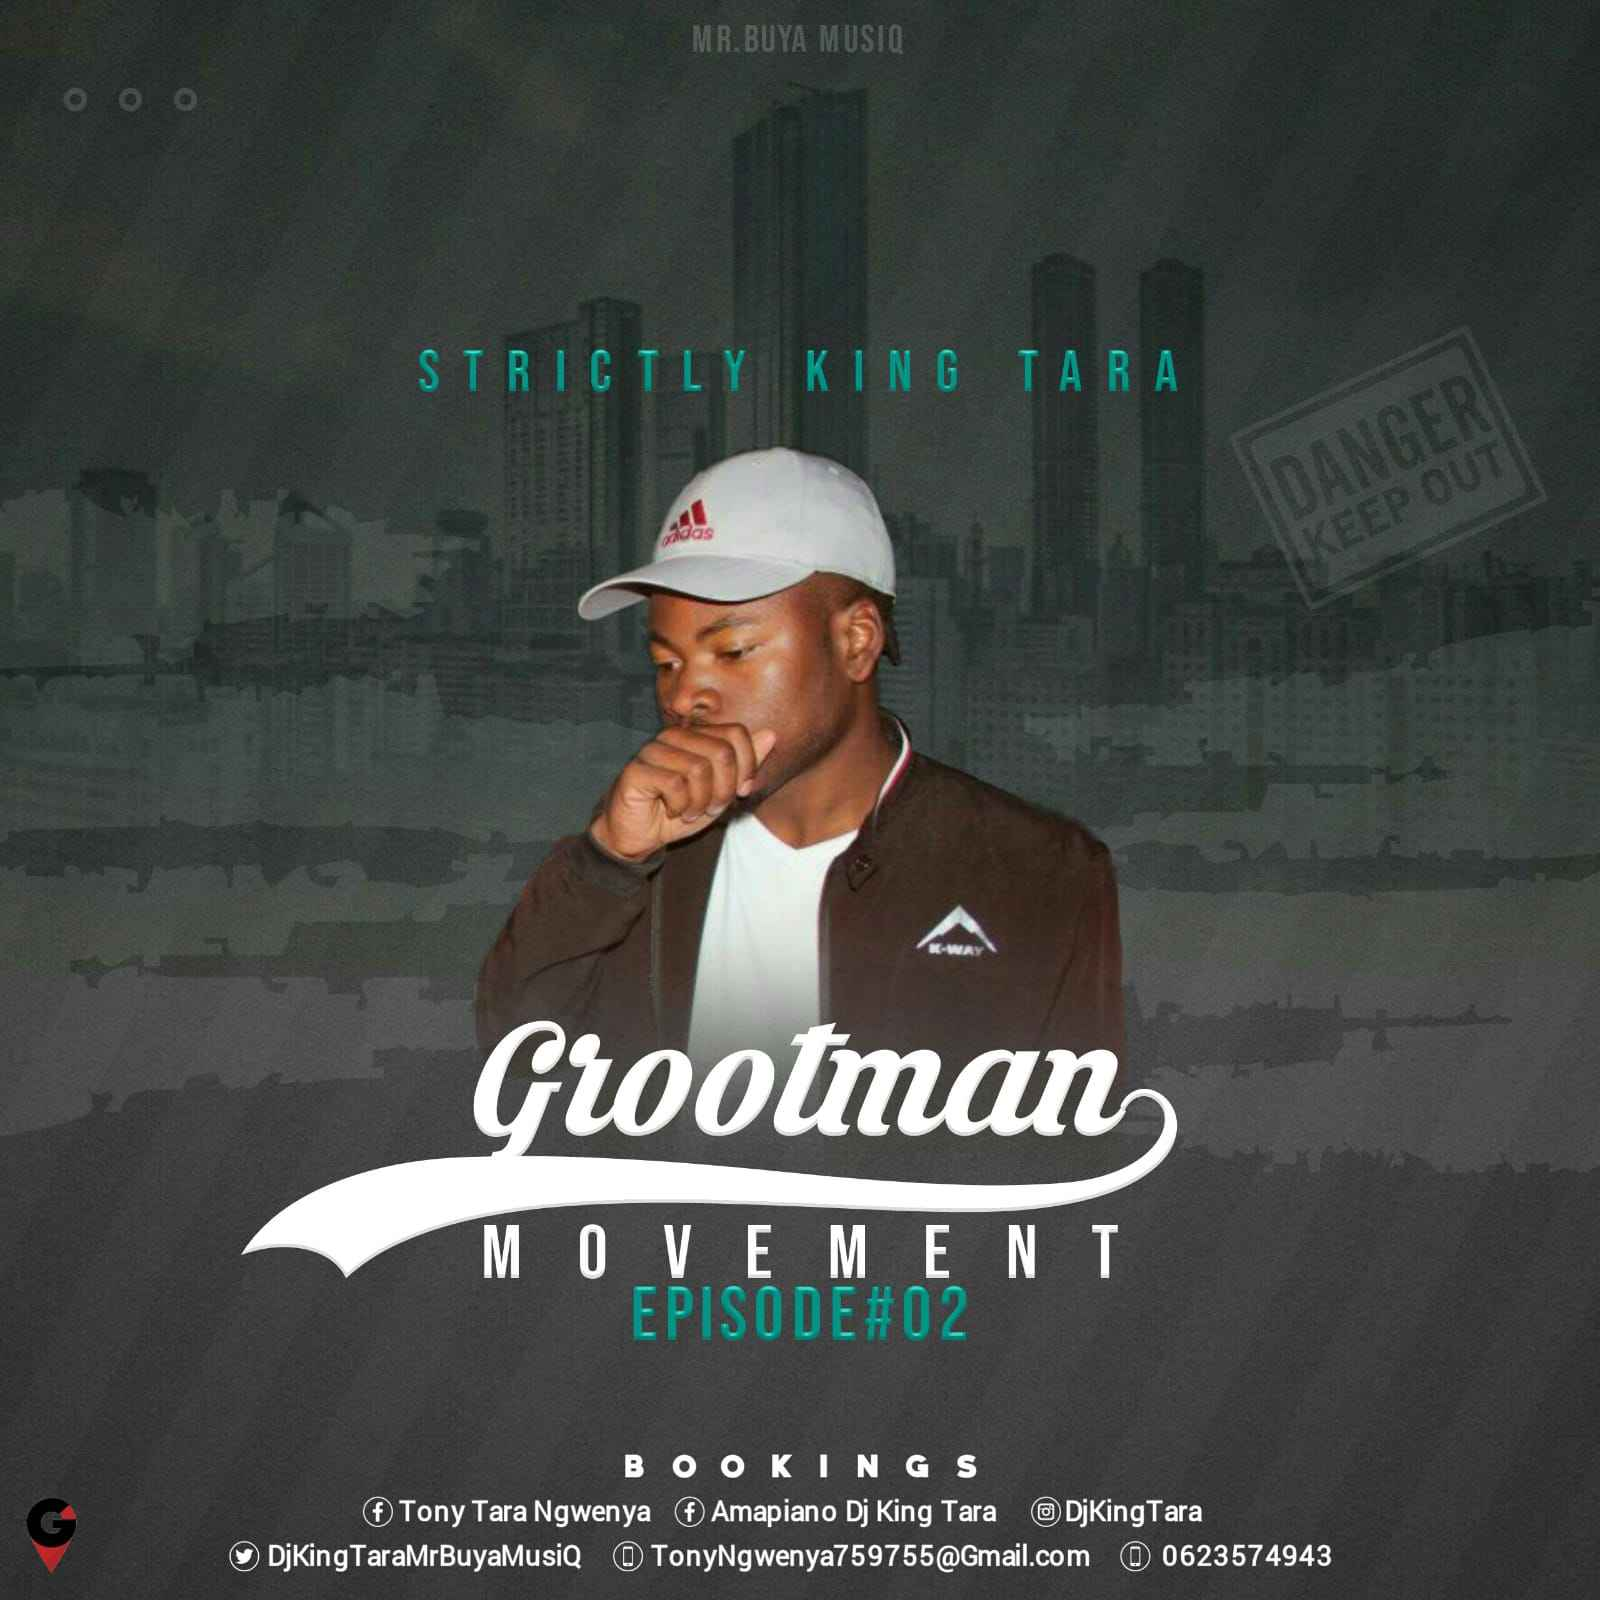 DJ King Tara Strictly King Tara Grootman Movement Episode 2